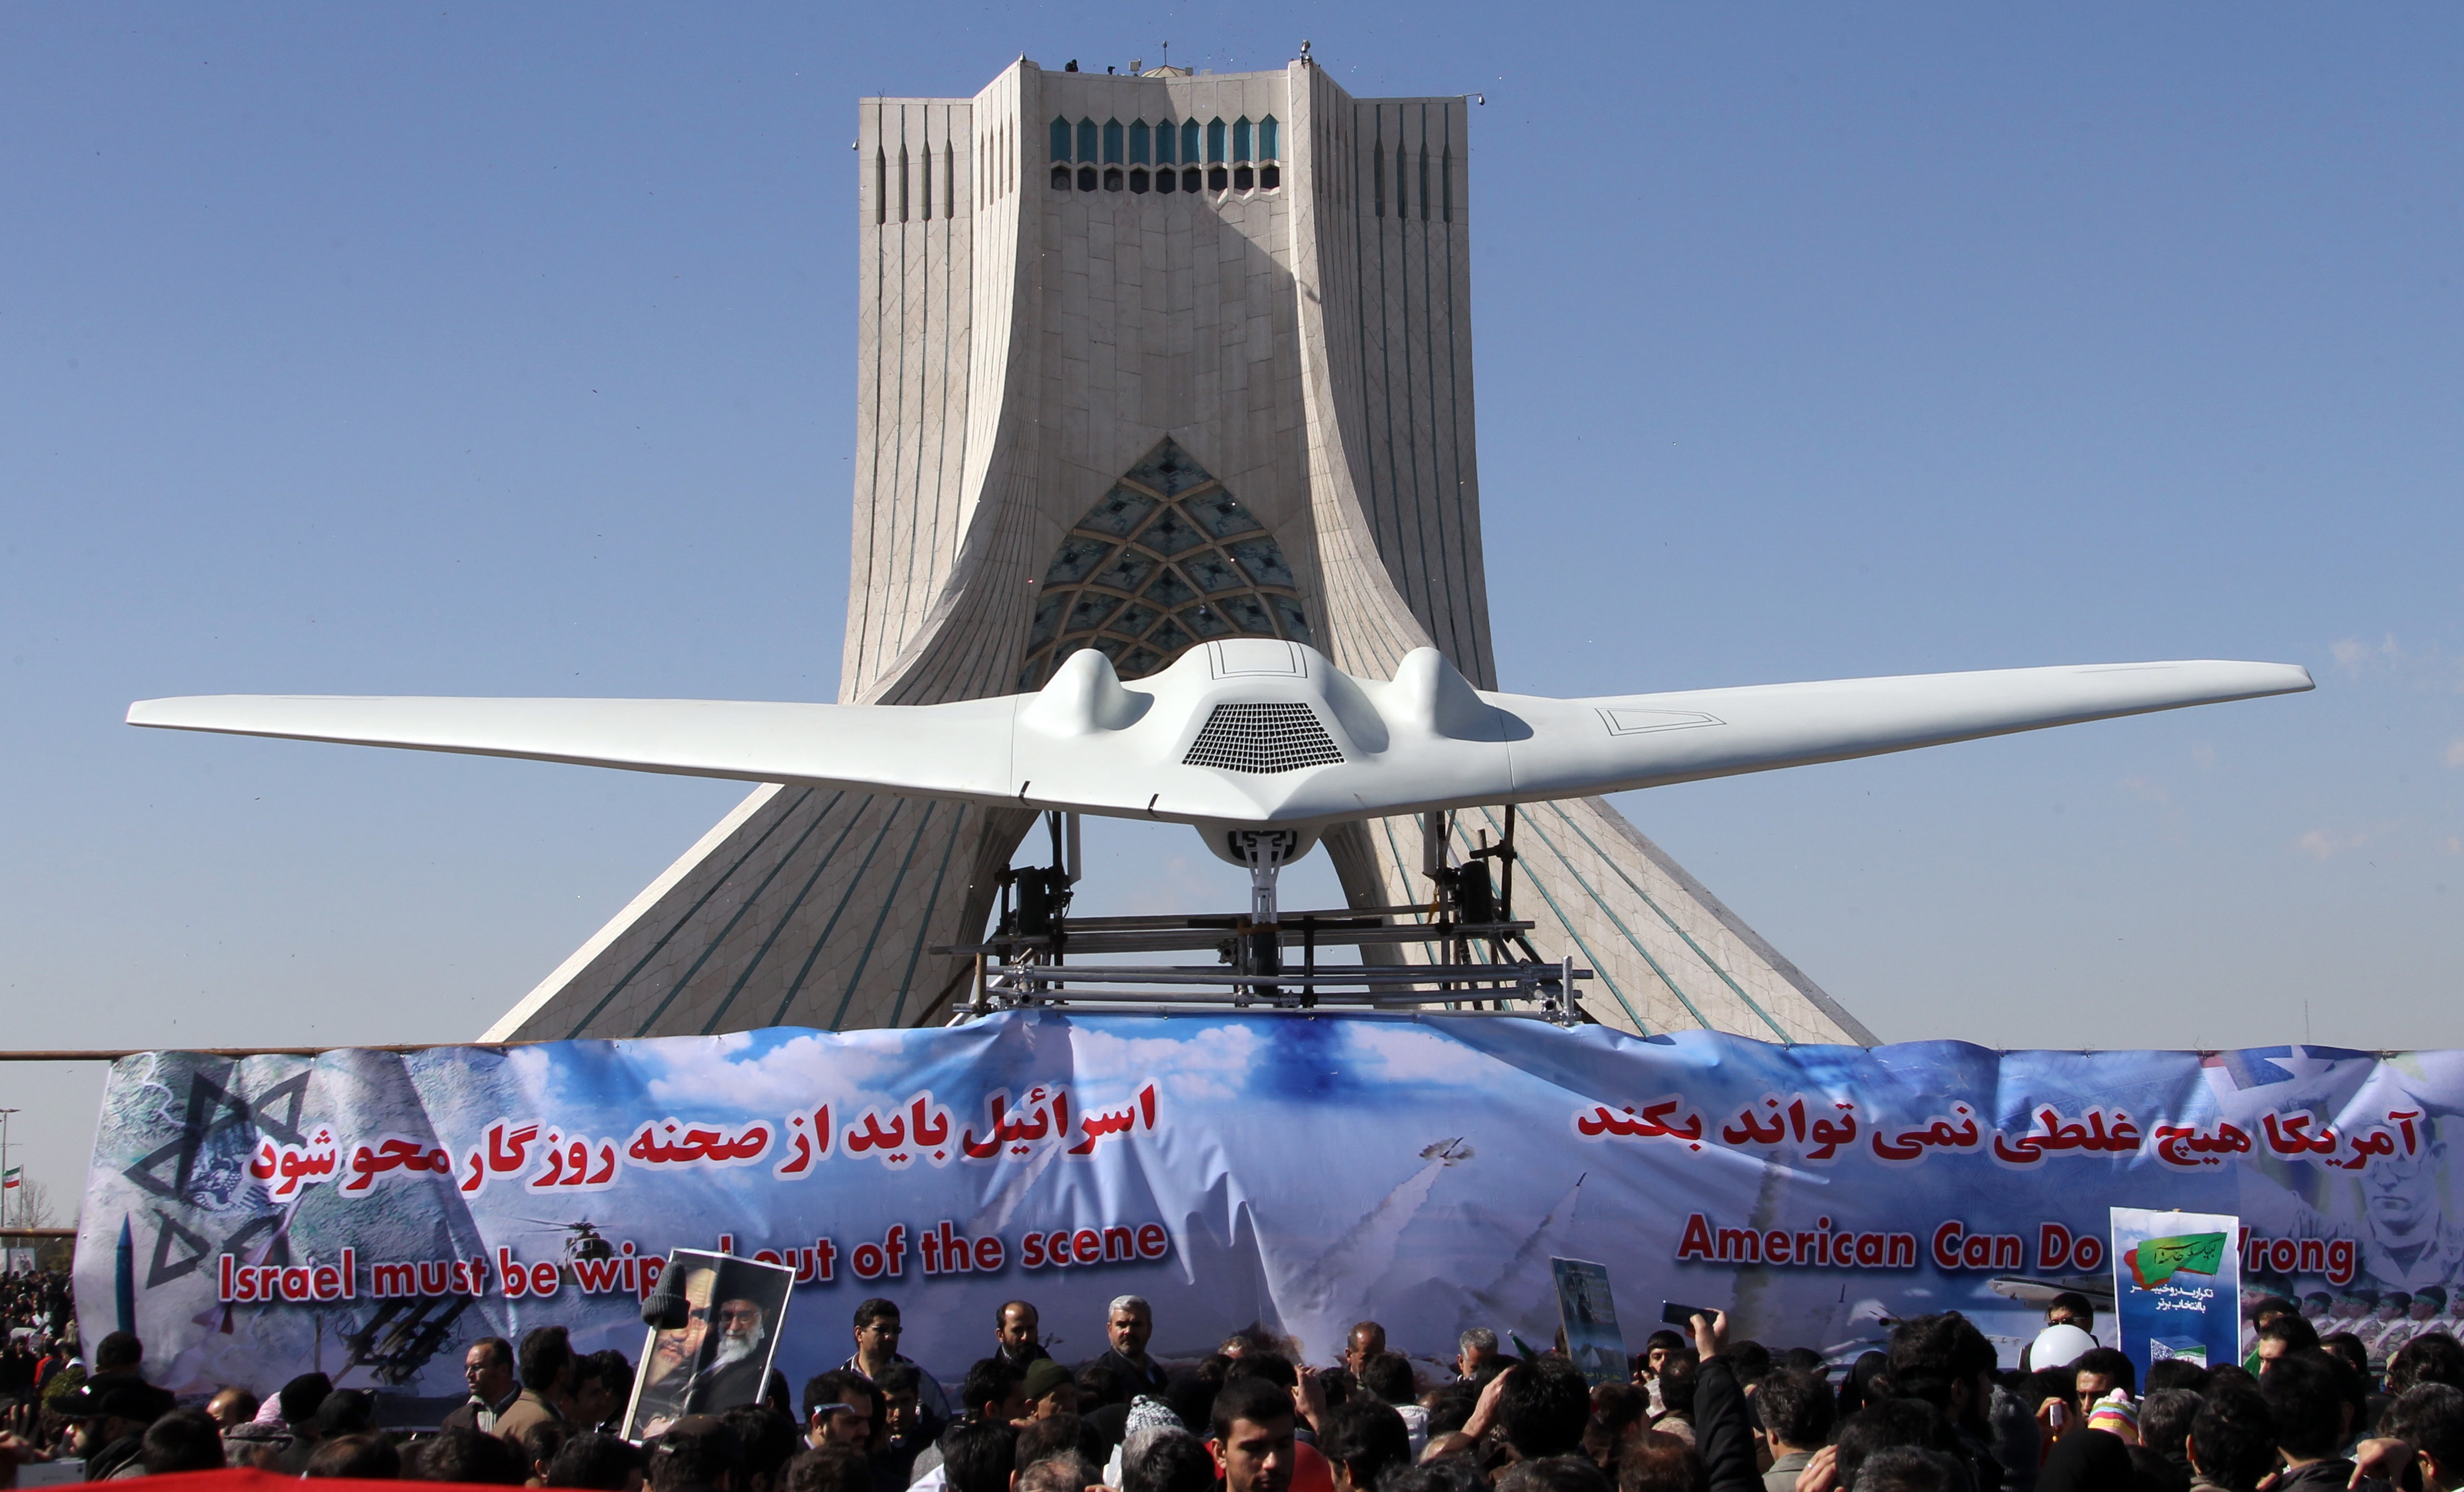 Iranians walk past a replica of the captured US RQ-170 drone which is on display next to the Azadi (Freedom) tower during the 33rd anniversary of the Islamic revolution in Tehran on February 11, 2012.